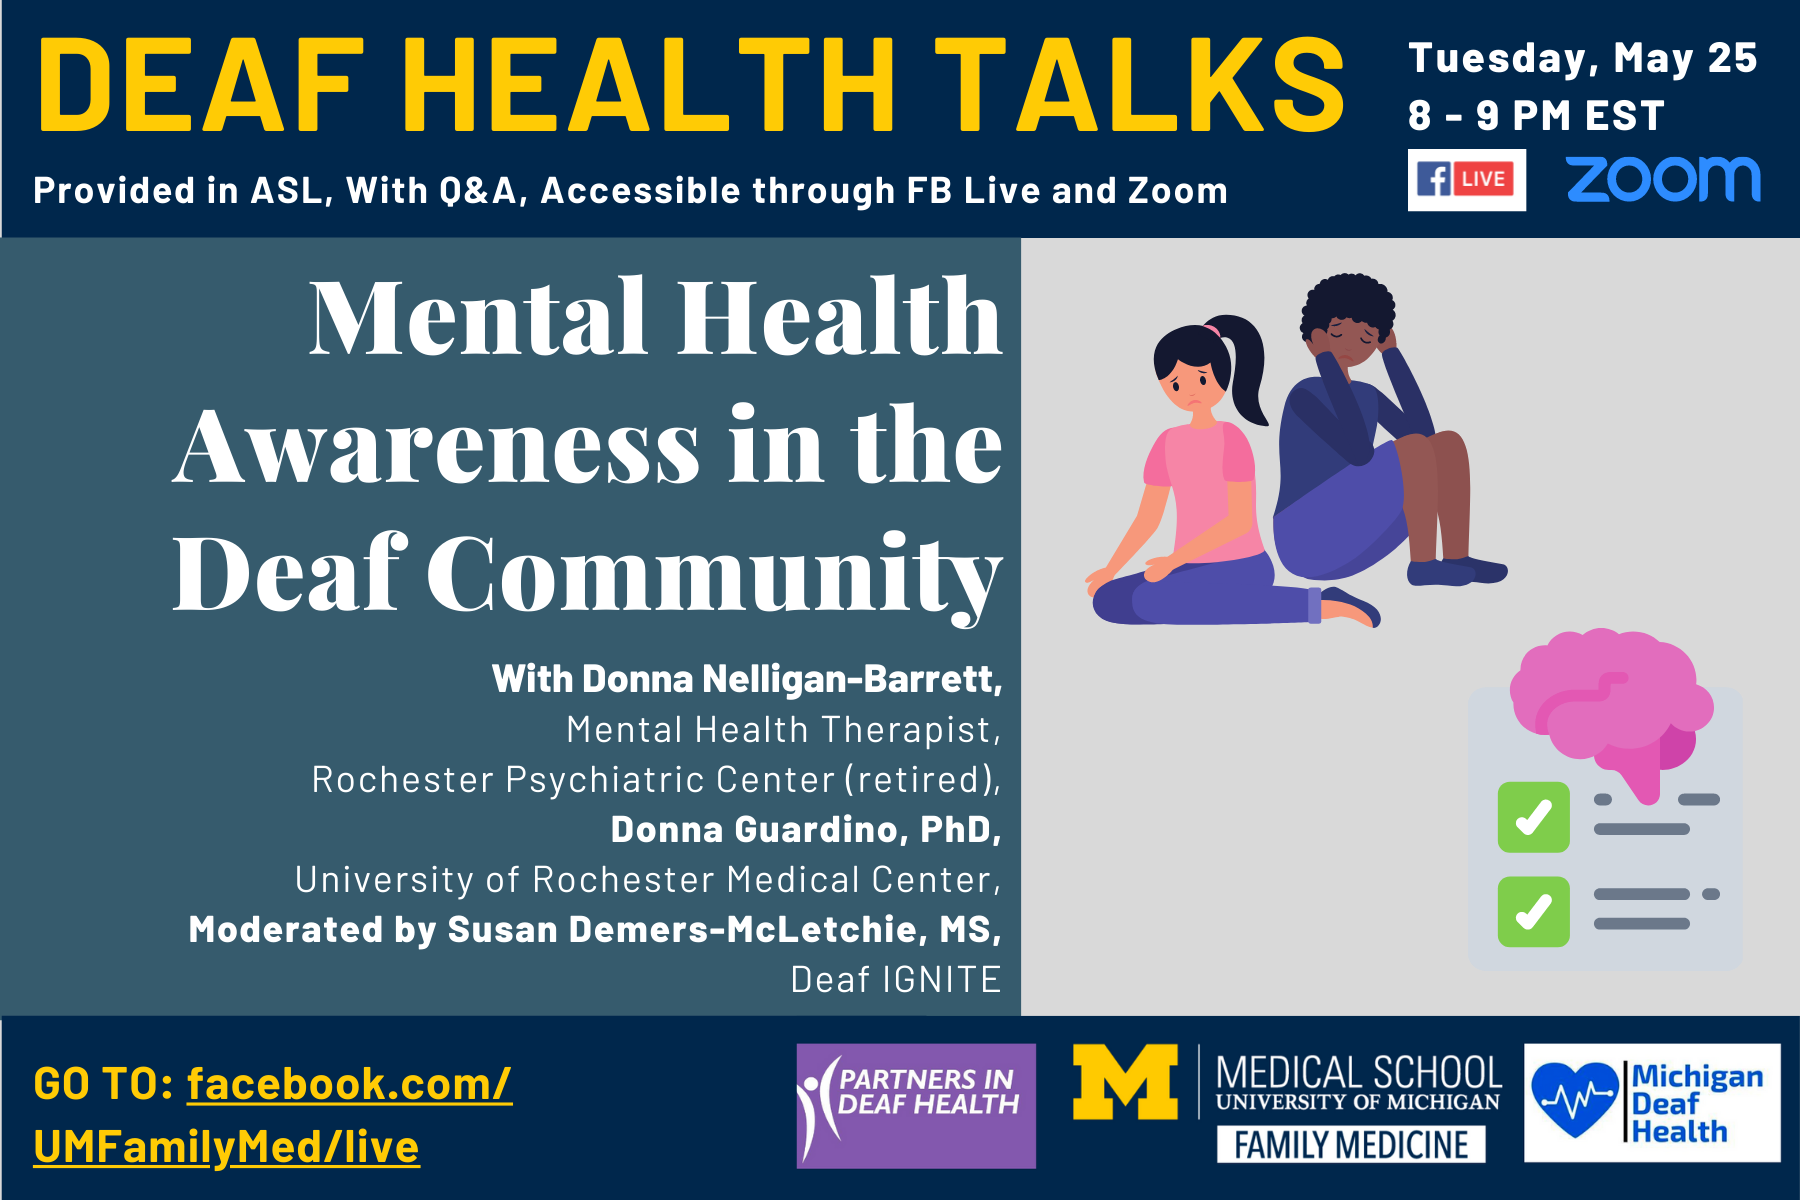 Deaf Health Talks, provided in ASL, with Q&A. Happening Tuesday, May 25, 8 to 9 PM EST, on Facebook Live and Zoom. Mental Health Awareness in the Deaf Community, with Donna Nelligan-Barrett Mental Health Therapist from Rochester Psychiatric Center (retire